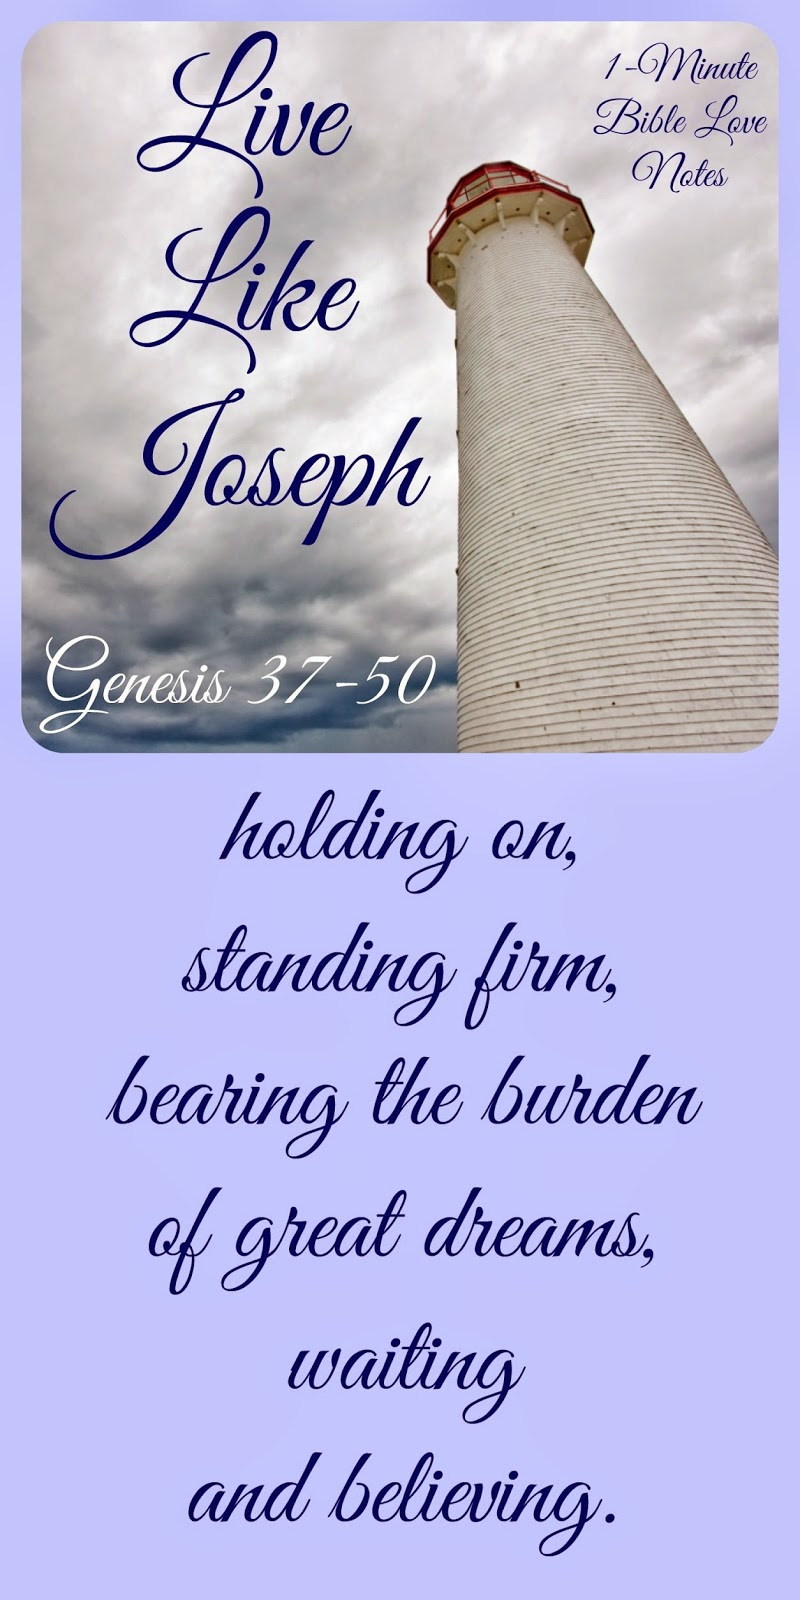 living like Joseph, Genesis 37-50, holding onto dreams